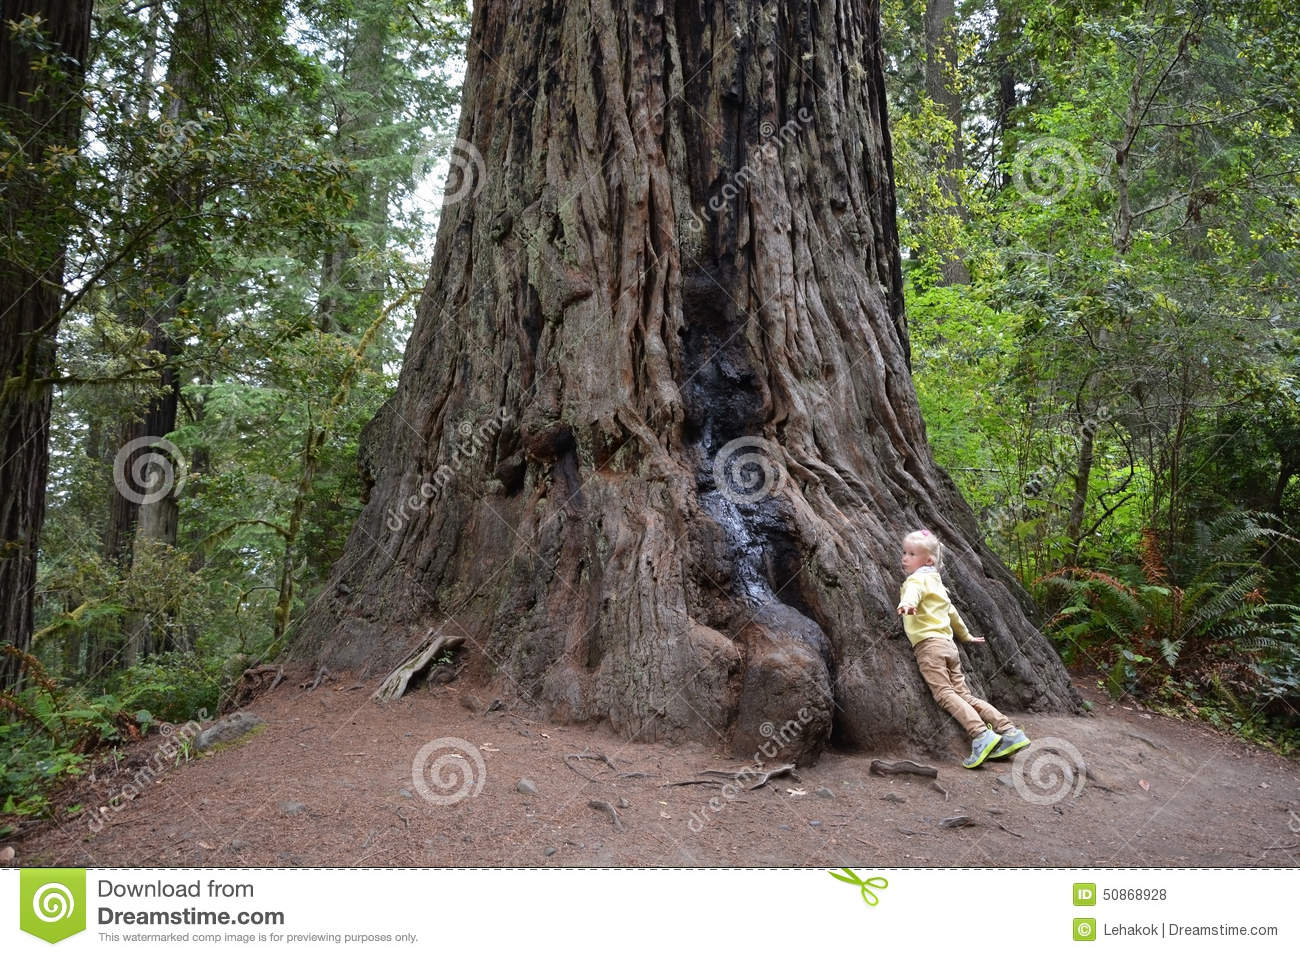 Small girl and giant tree